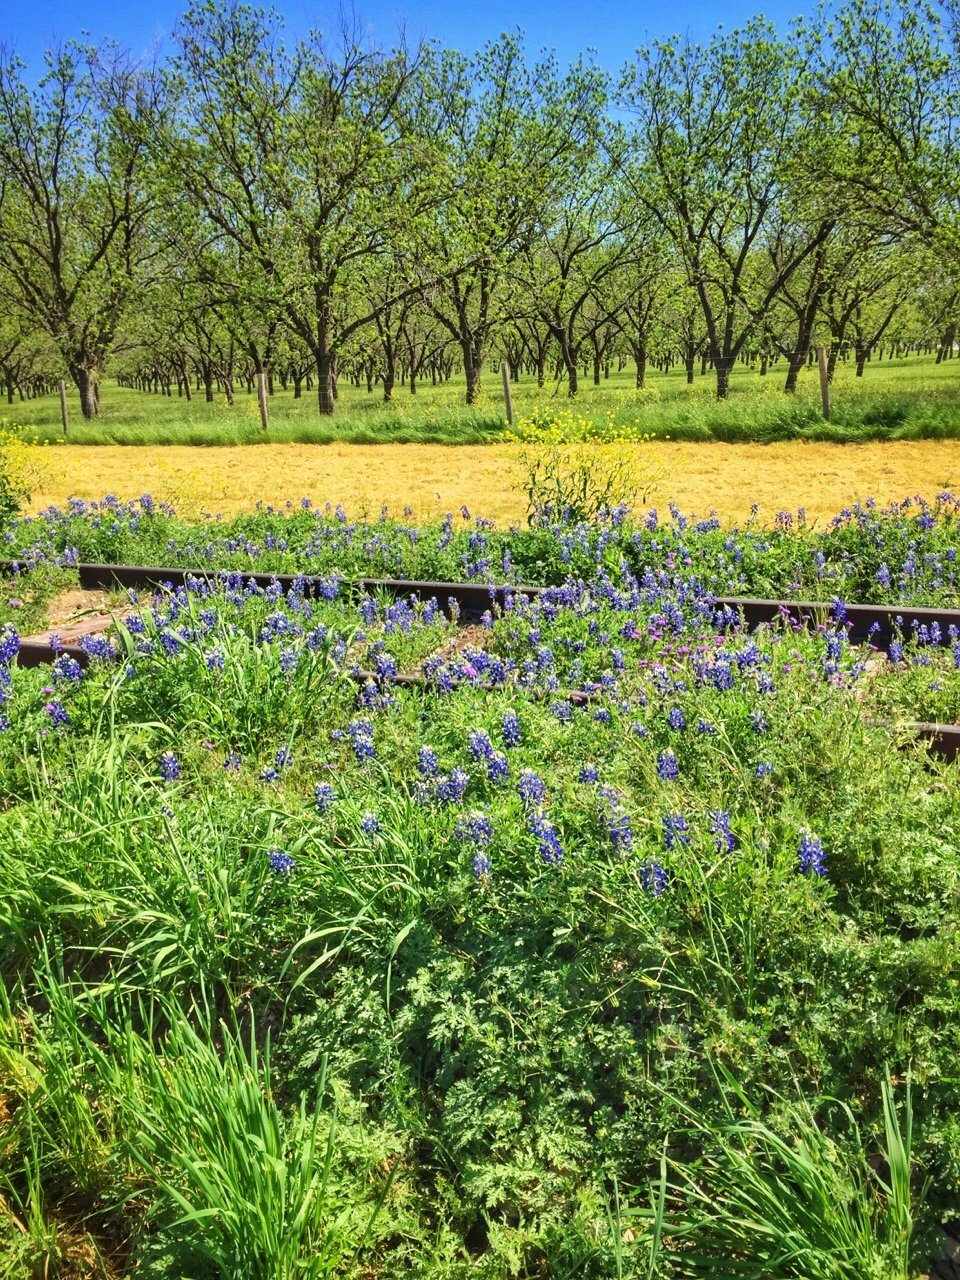 How To Spend A Spectacular Weekend in San Saba